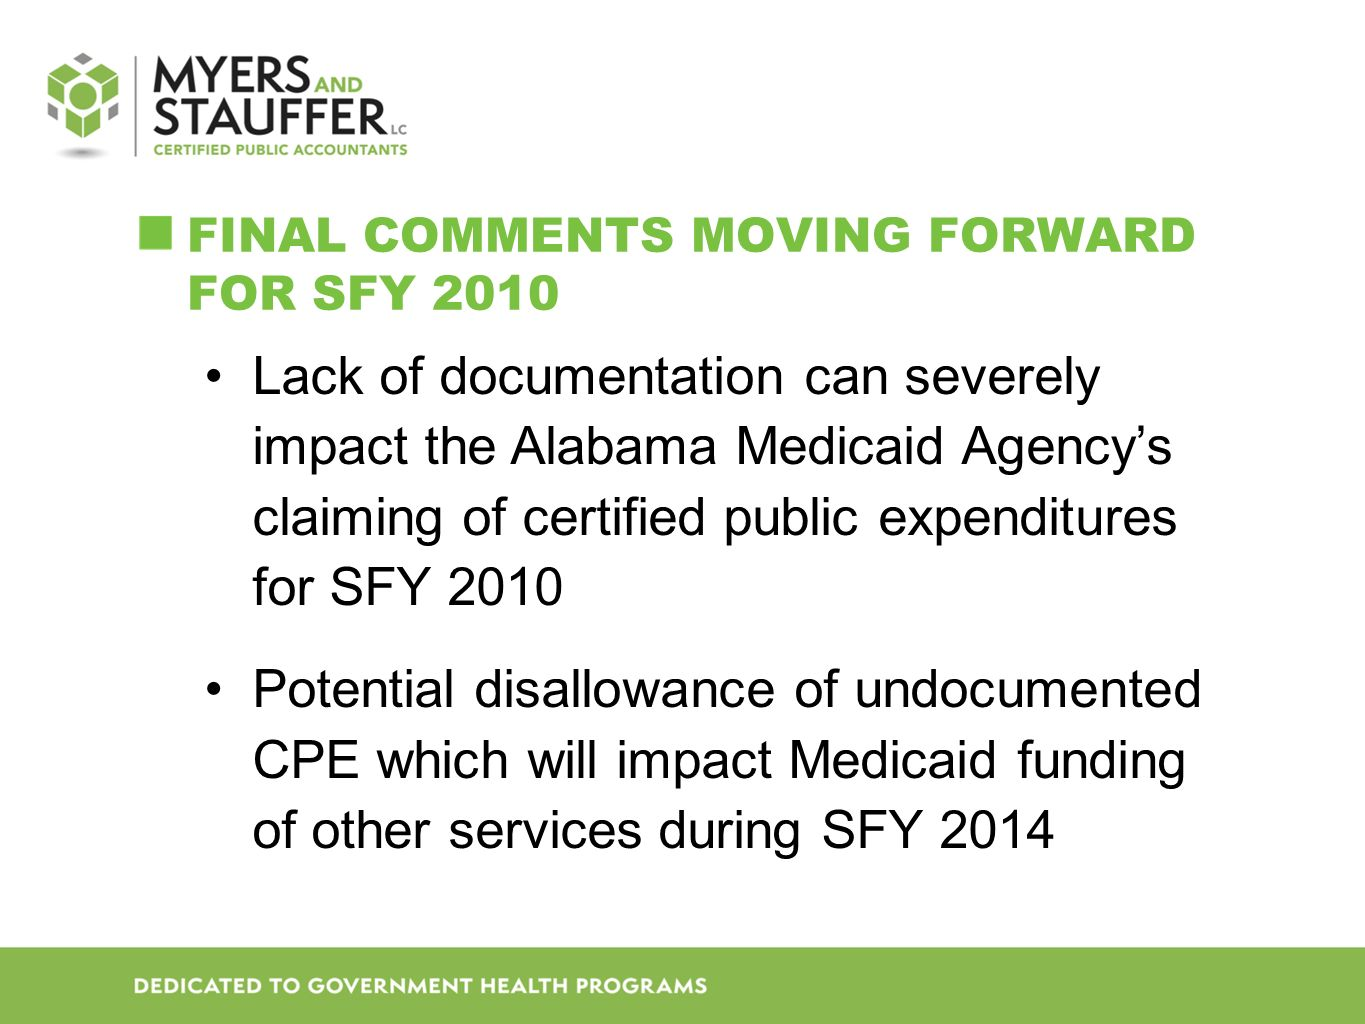 FINAL COMMENTS MOVING FORWARD FOR SFY 2010 Lack of documentation can severely impact the Alabama Medicaid Agencys claiming of certified public expenditures for SFY 2010 Potential disallowance of undocumented CPE which will impact Medicaid funding of other services during SFY 2014